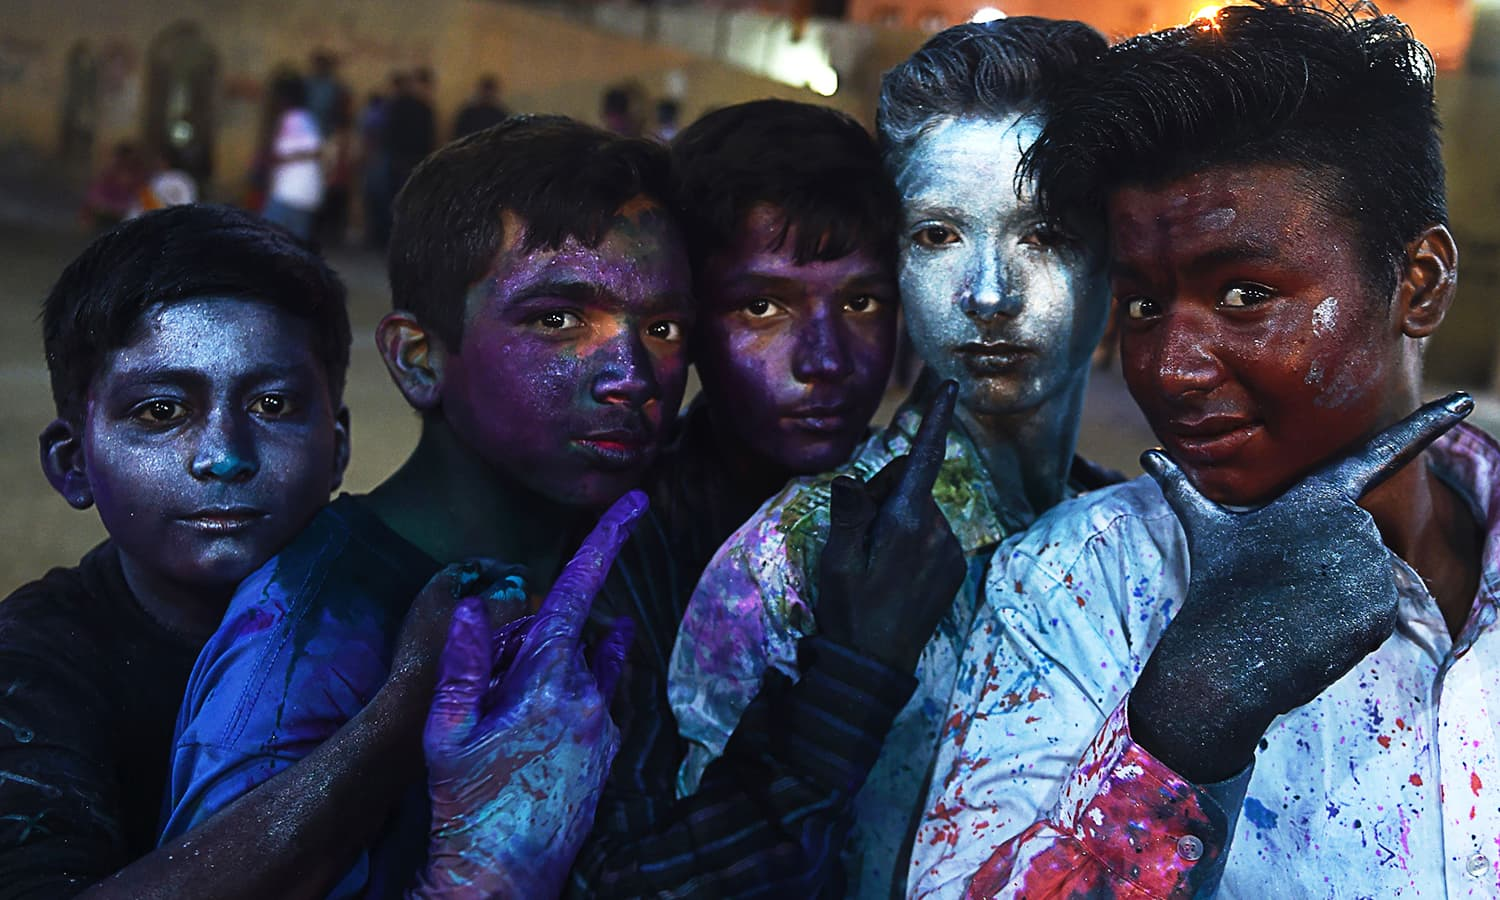 Pakistani Hindu children celebrate holi in Karachi on March 12.— AFP